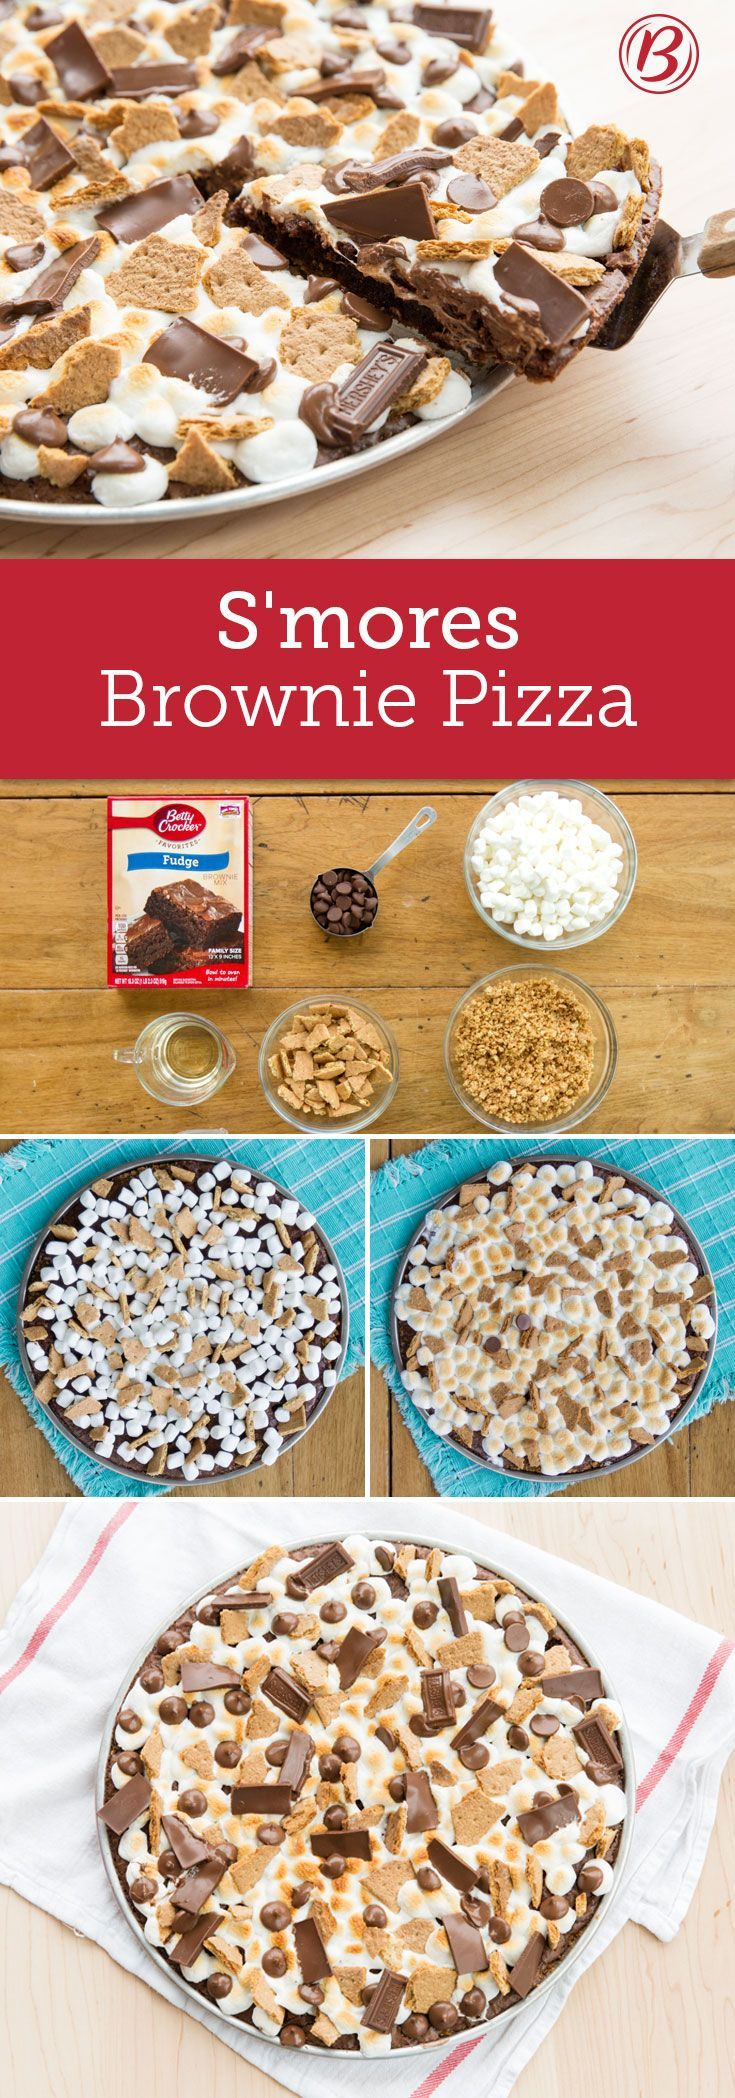 19 best jets pizza reviews images on pinterest fighter jets jets smores brownie pizza ccuart Image collections